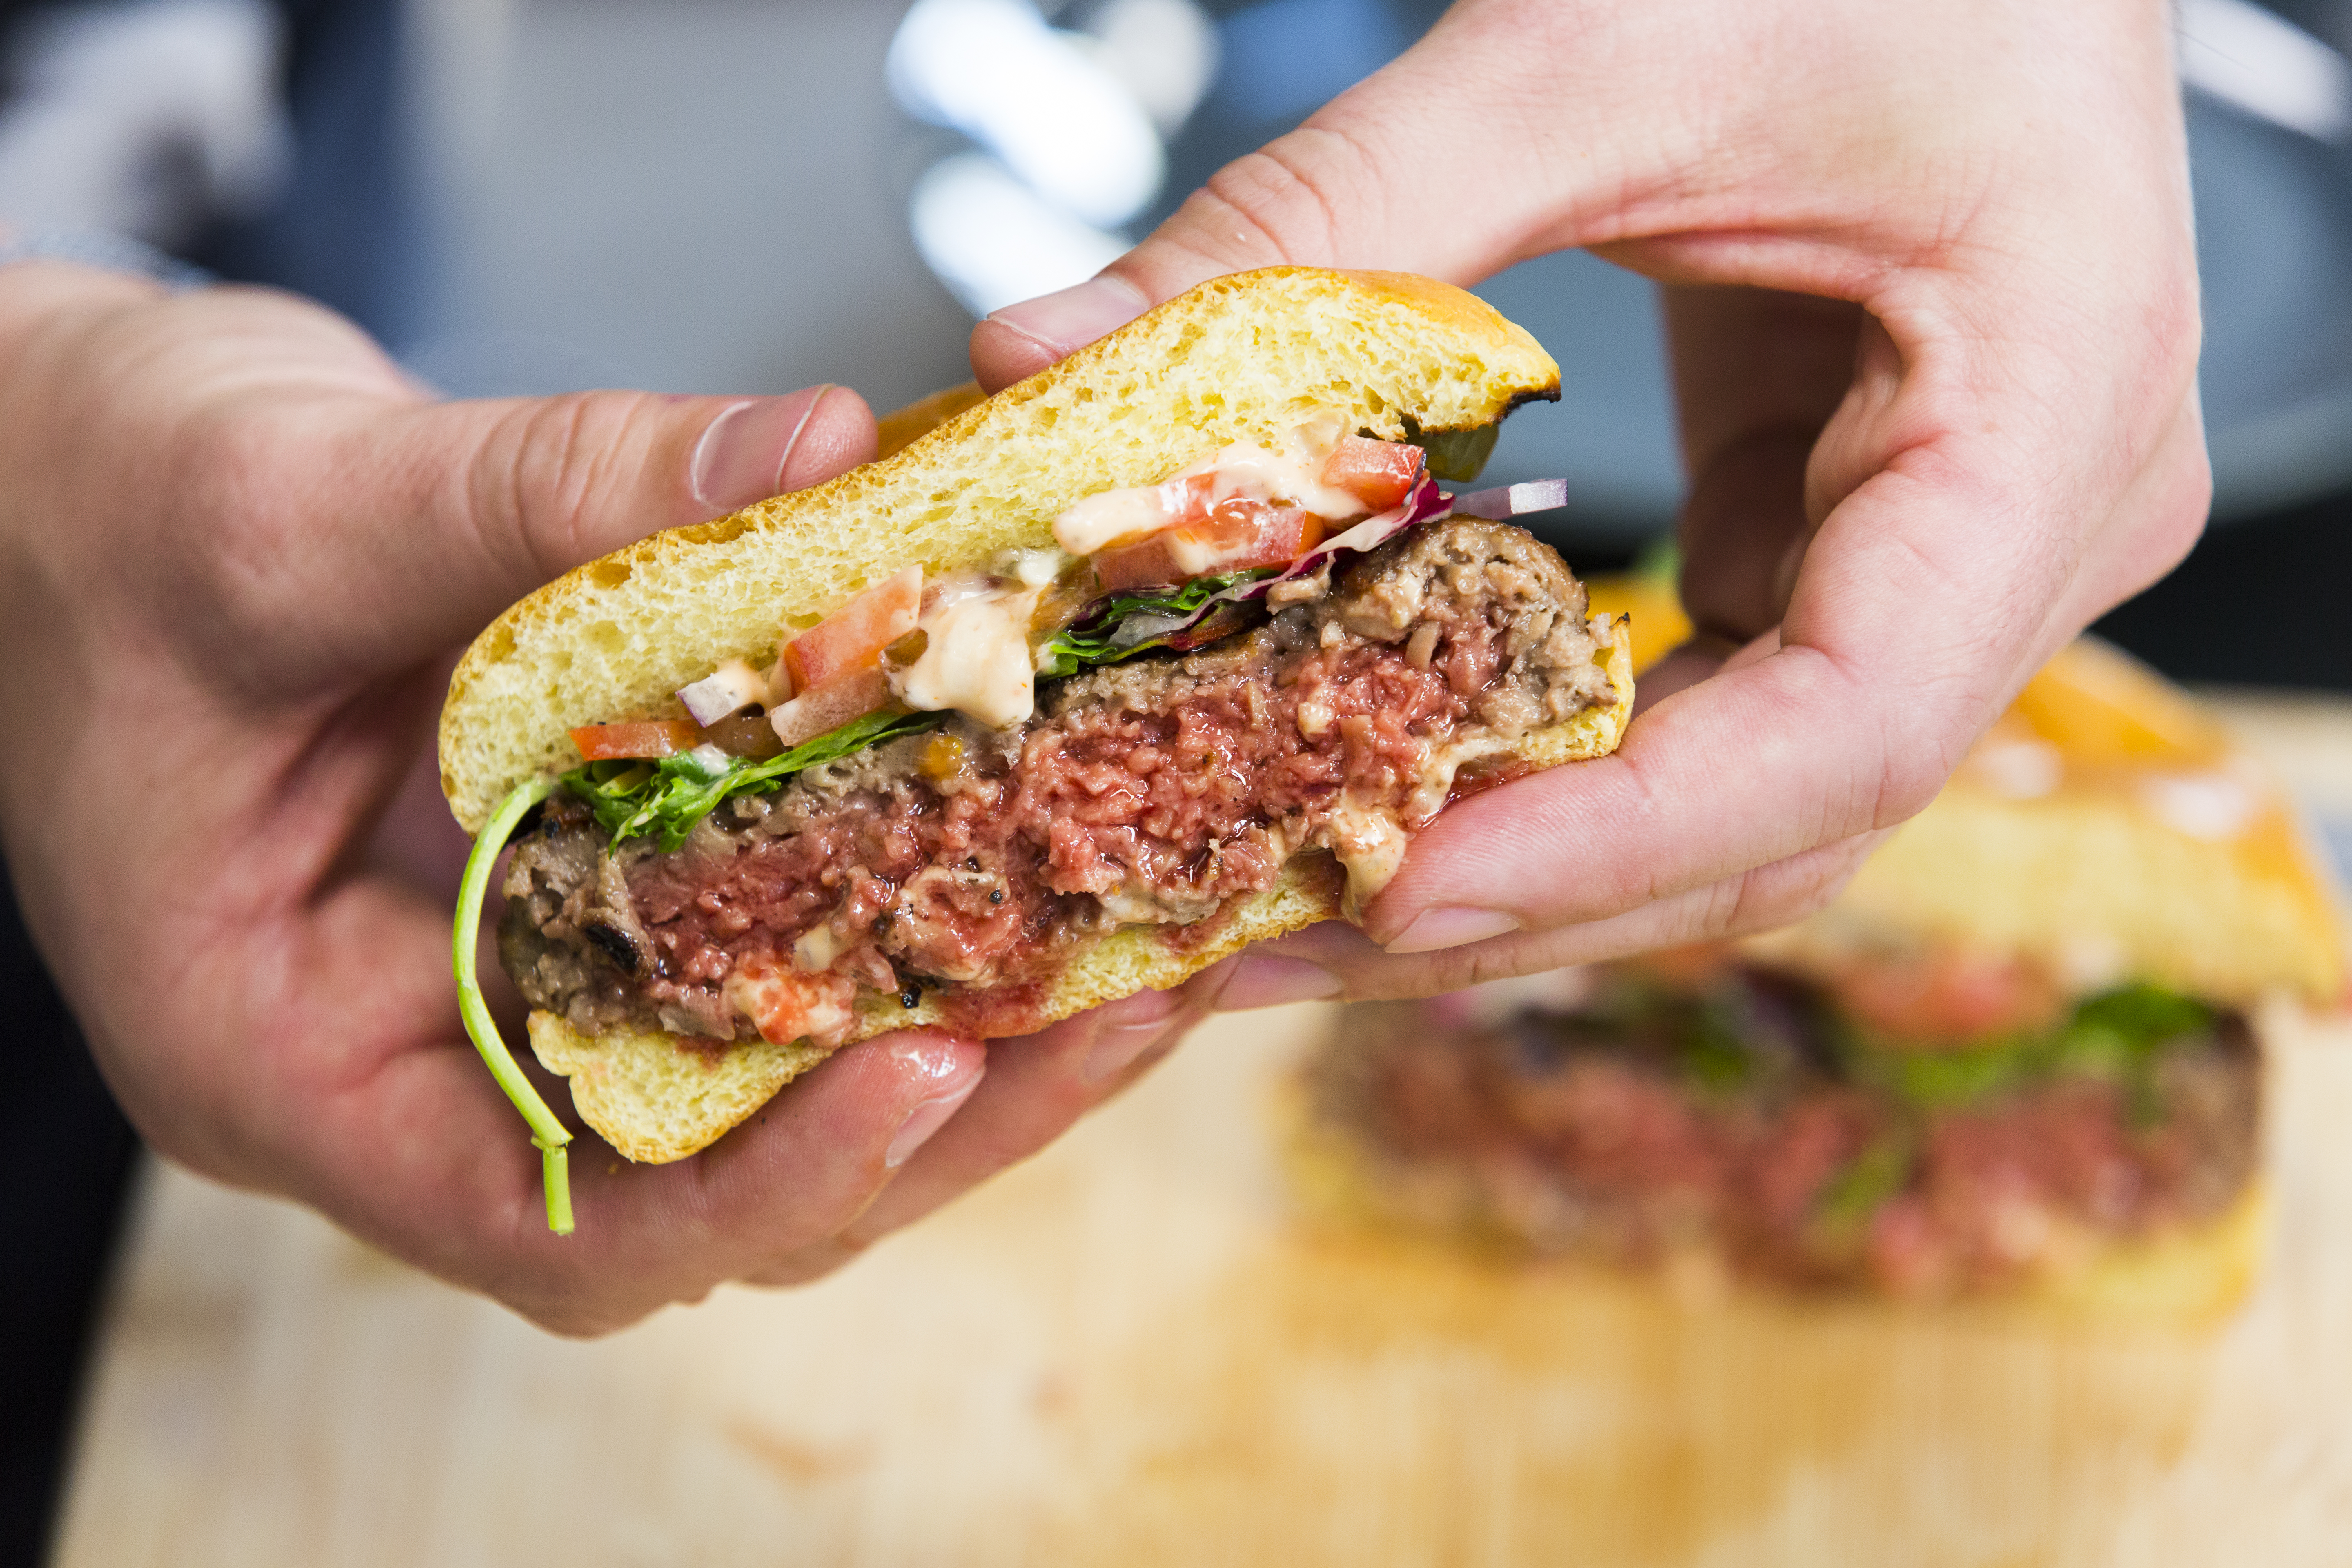 An Impossible burger cut half open and in a person's hands.